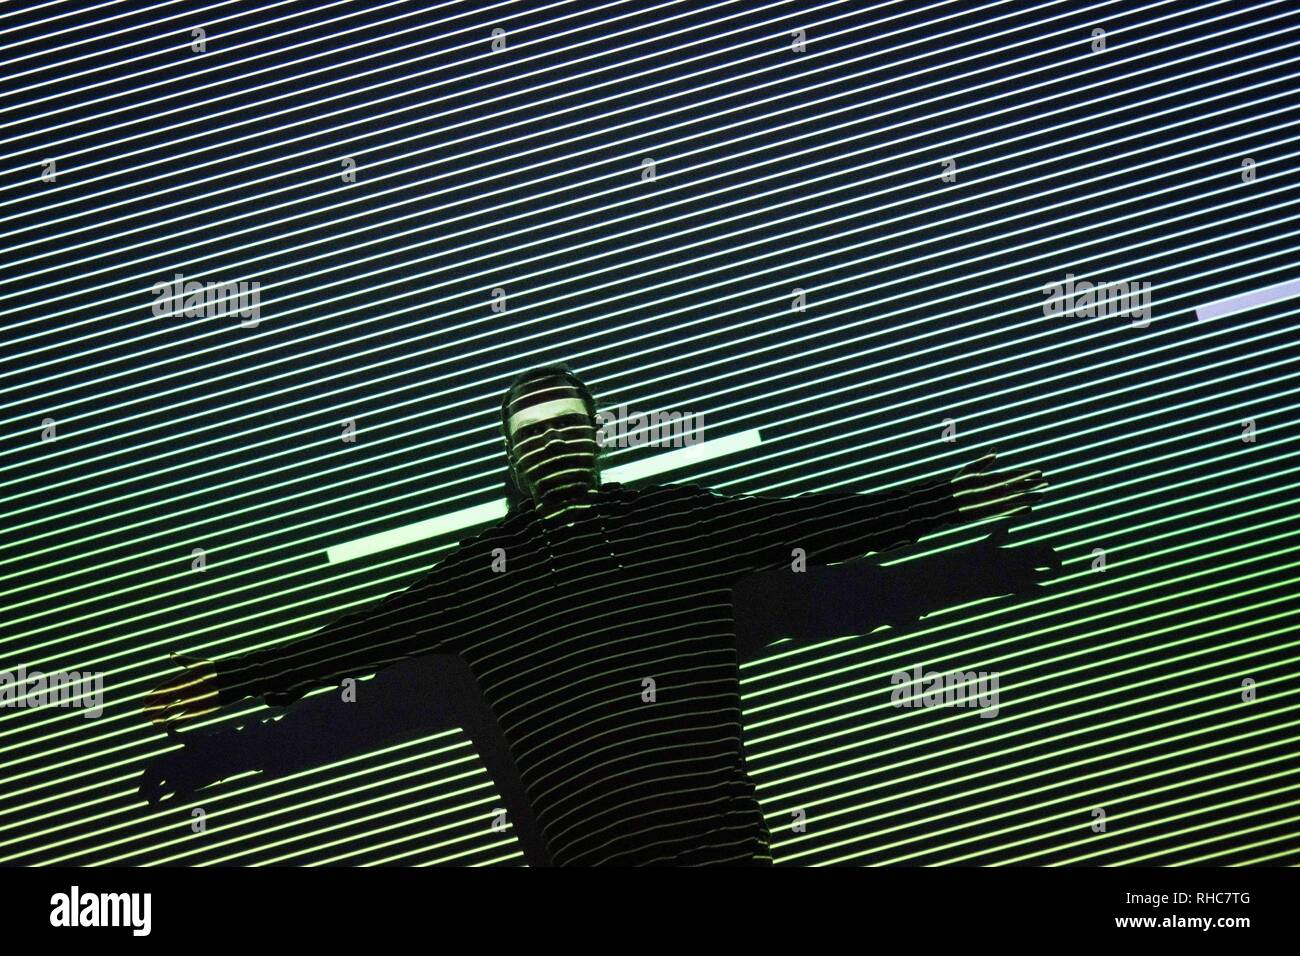 Athens, Greece. 1st Feb, 2019. A visitor seen performing with the lights and effect of the Multimedia project Data Flux (12 XGA version) by Japanese artist Ryoji Ikeda at the Onassis Cultural Center in Athens. The Japanese artist presents an installation which challenges the limits of human perception and digital technology. With the precision of a metronome, twelve parallel video projectors synchronize with a minimalist electronic composition, turning numbers and data into the ultimate sensory experience for the visitor. Credit: ZUMA Press, Inc./Alamy Live News - Stock Image